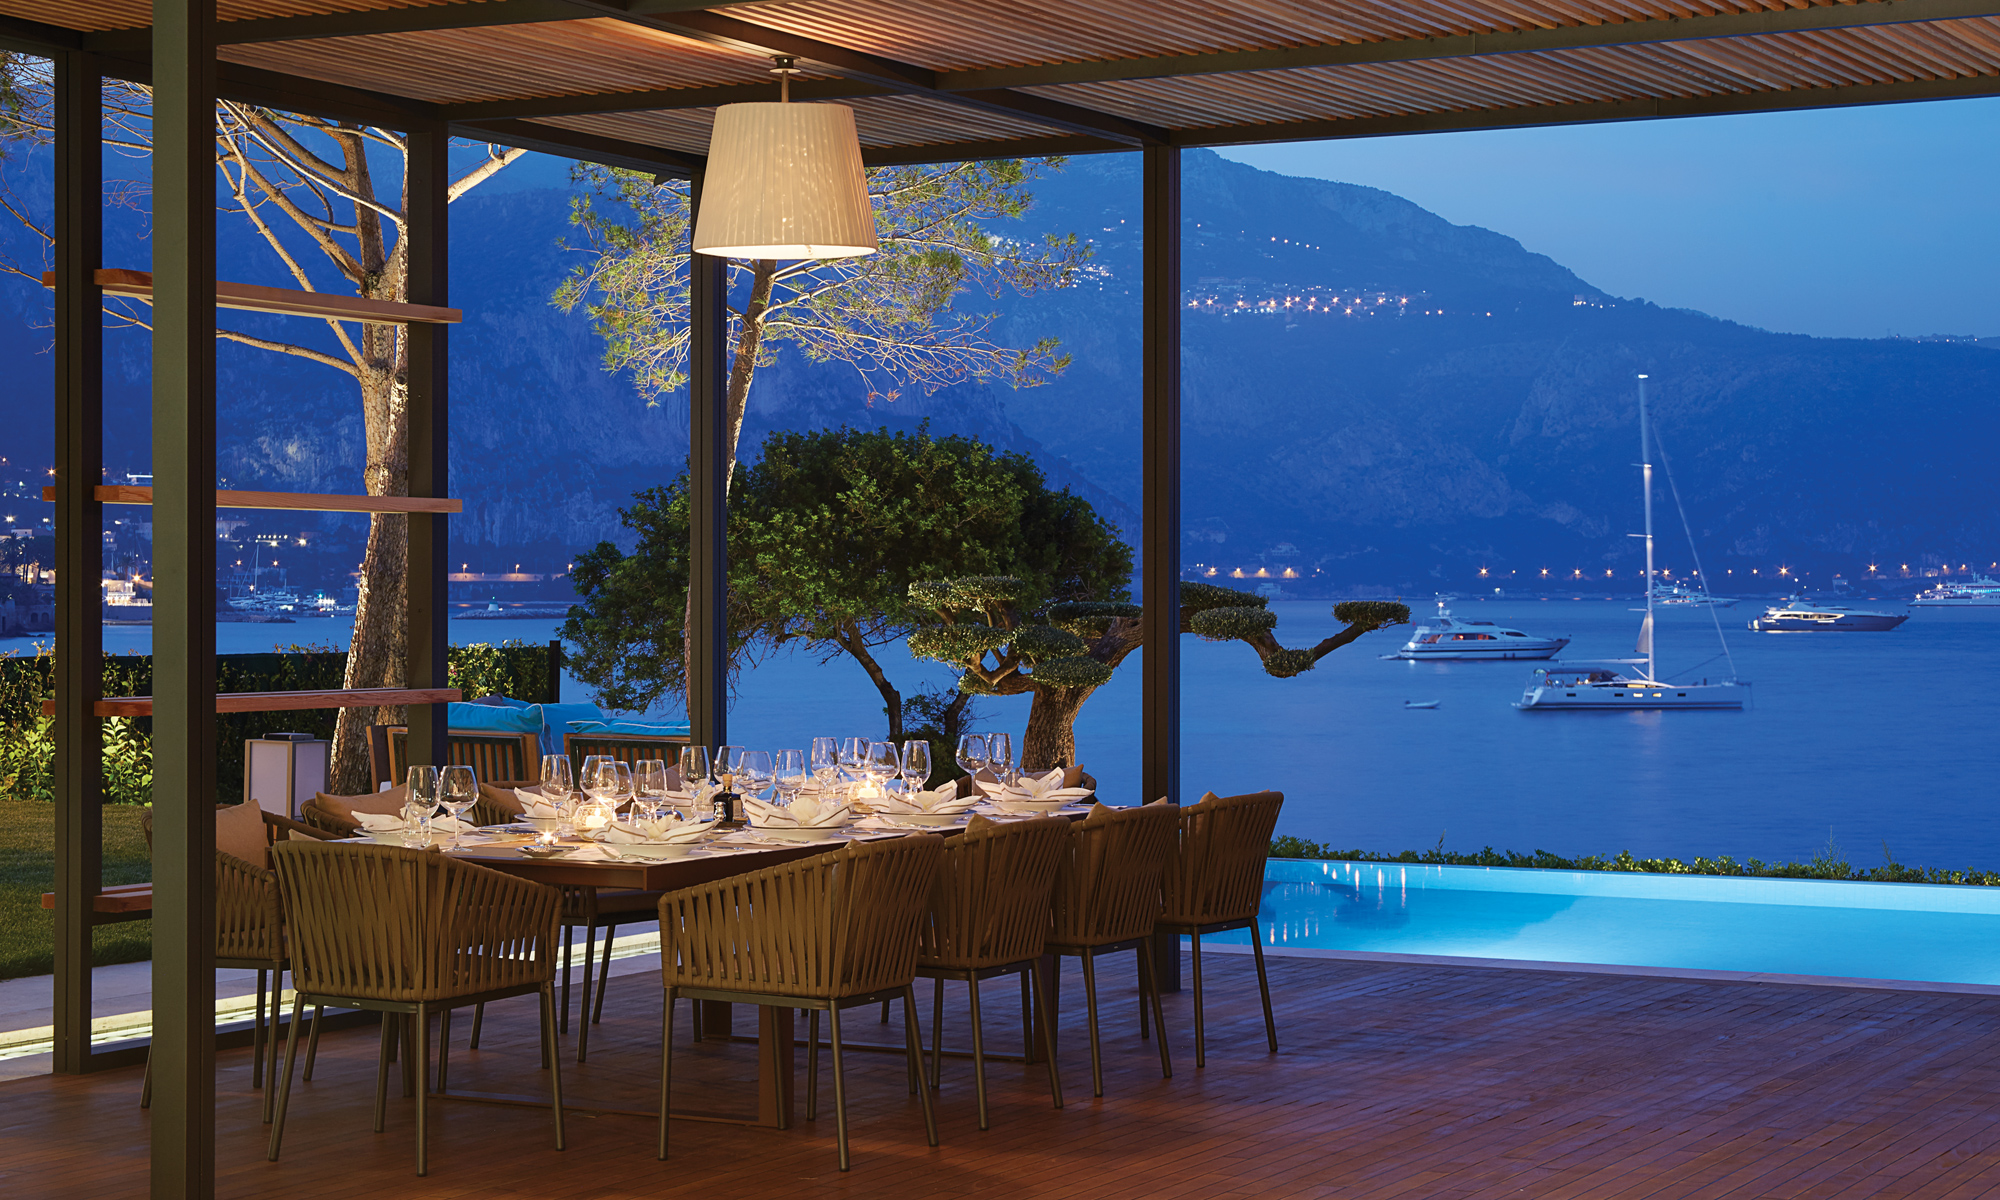 Evening dining on the terrace provides breath-taking views across the bay.